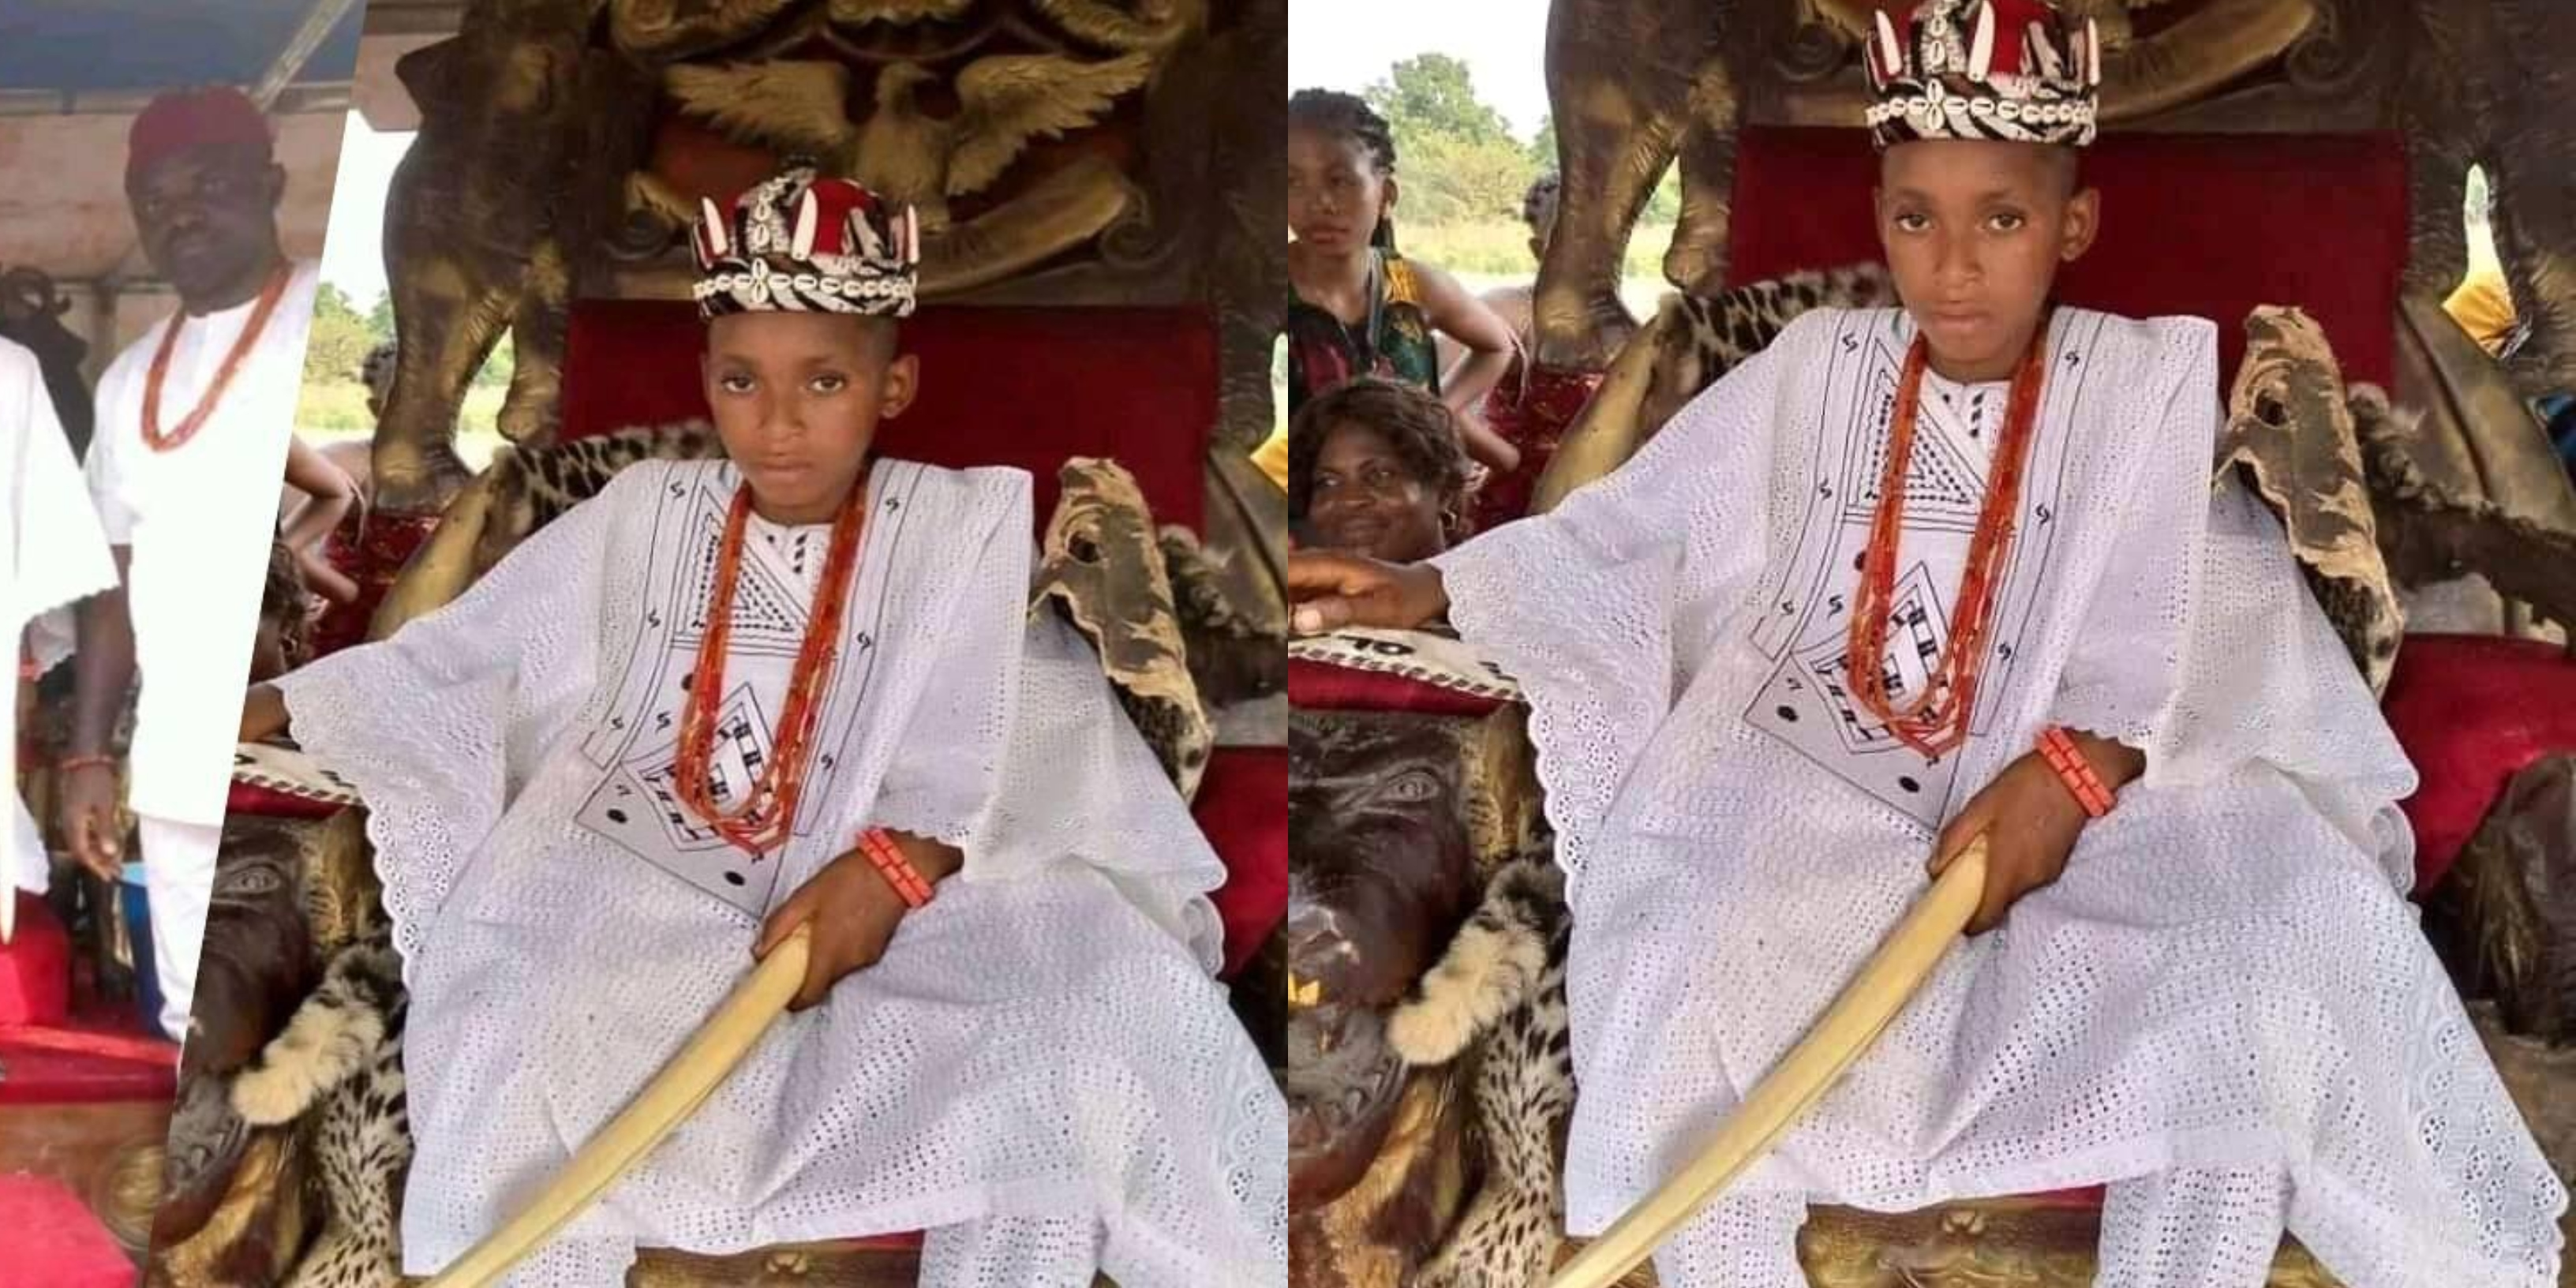 10-year-old boy crowned as king in Nigeria's Anambra state